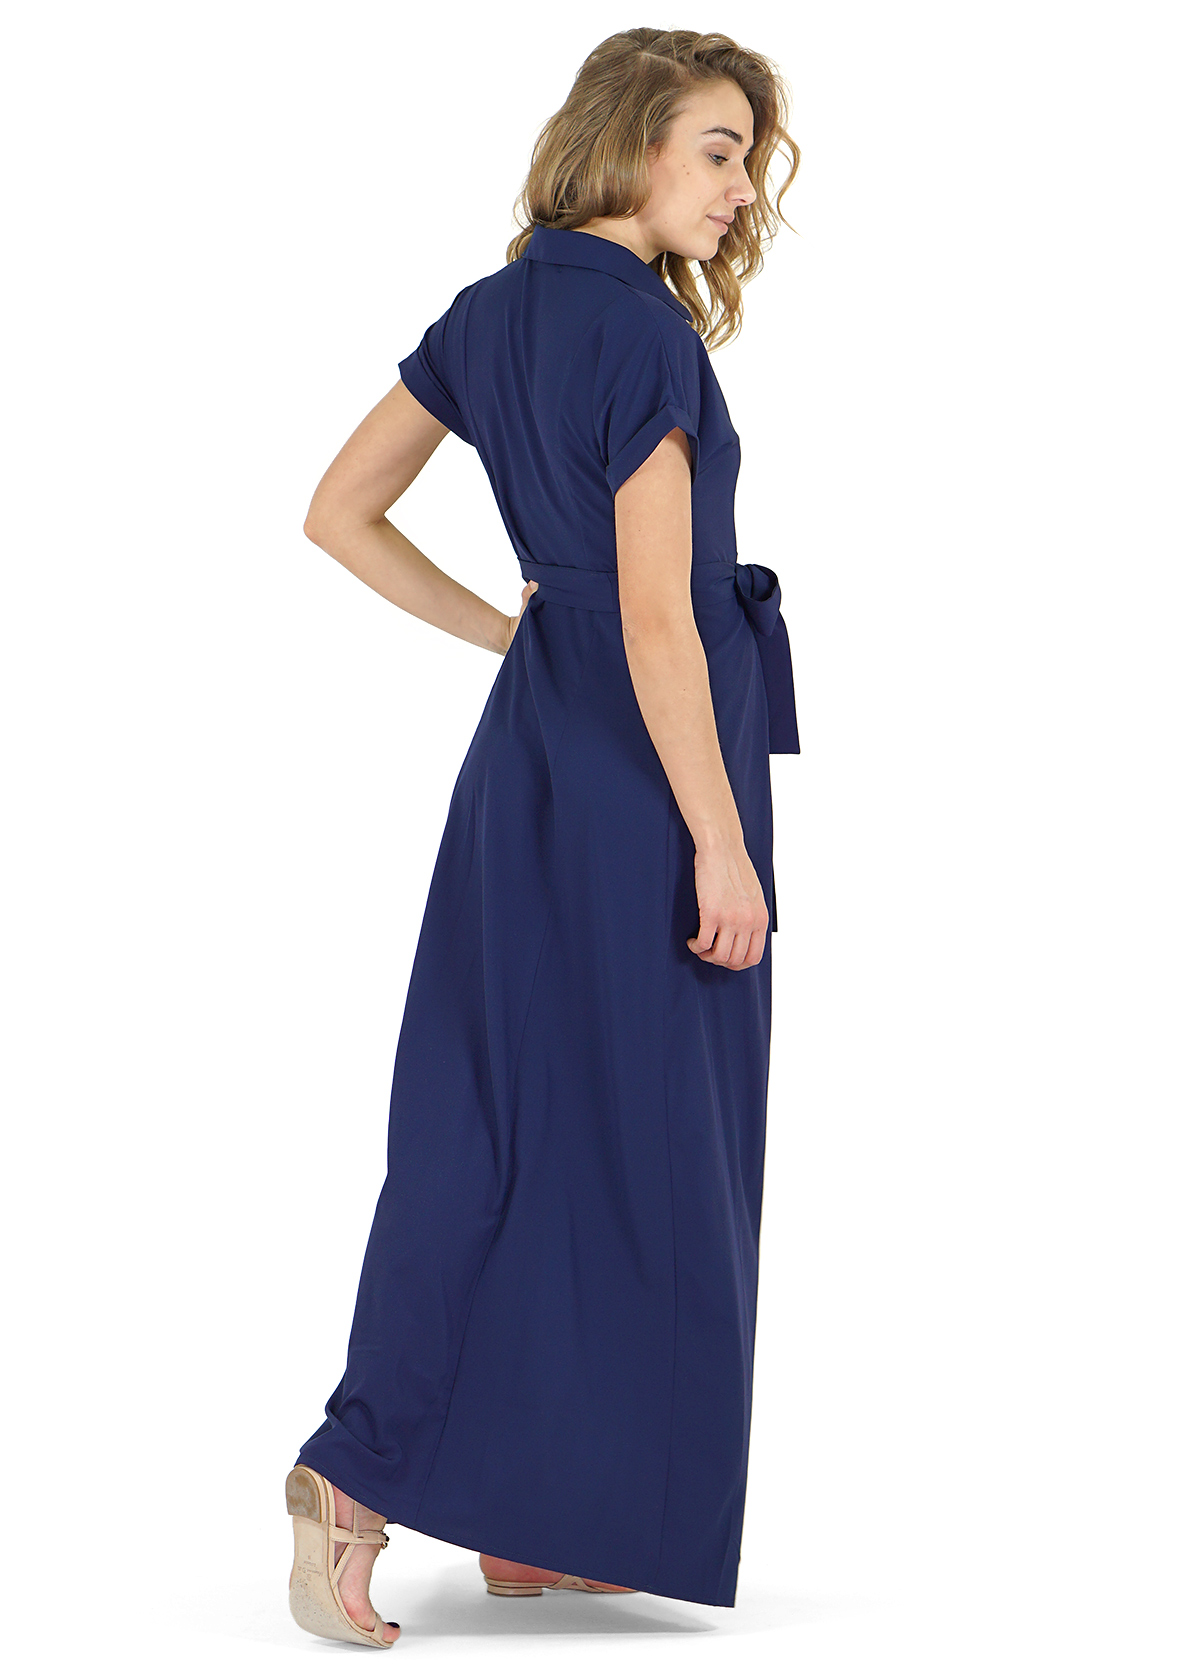 Uralmama alamani alamani maternity dress in dark blue ombrellifo Images